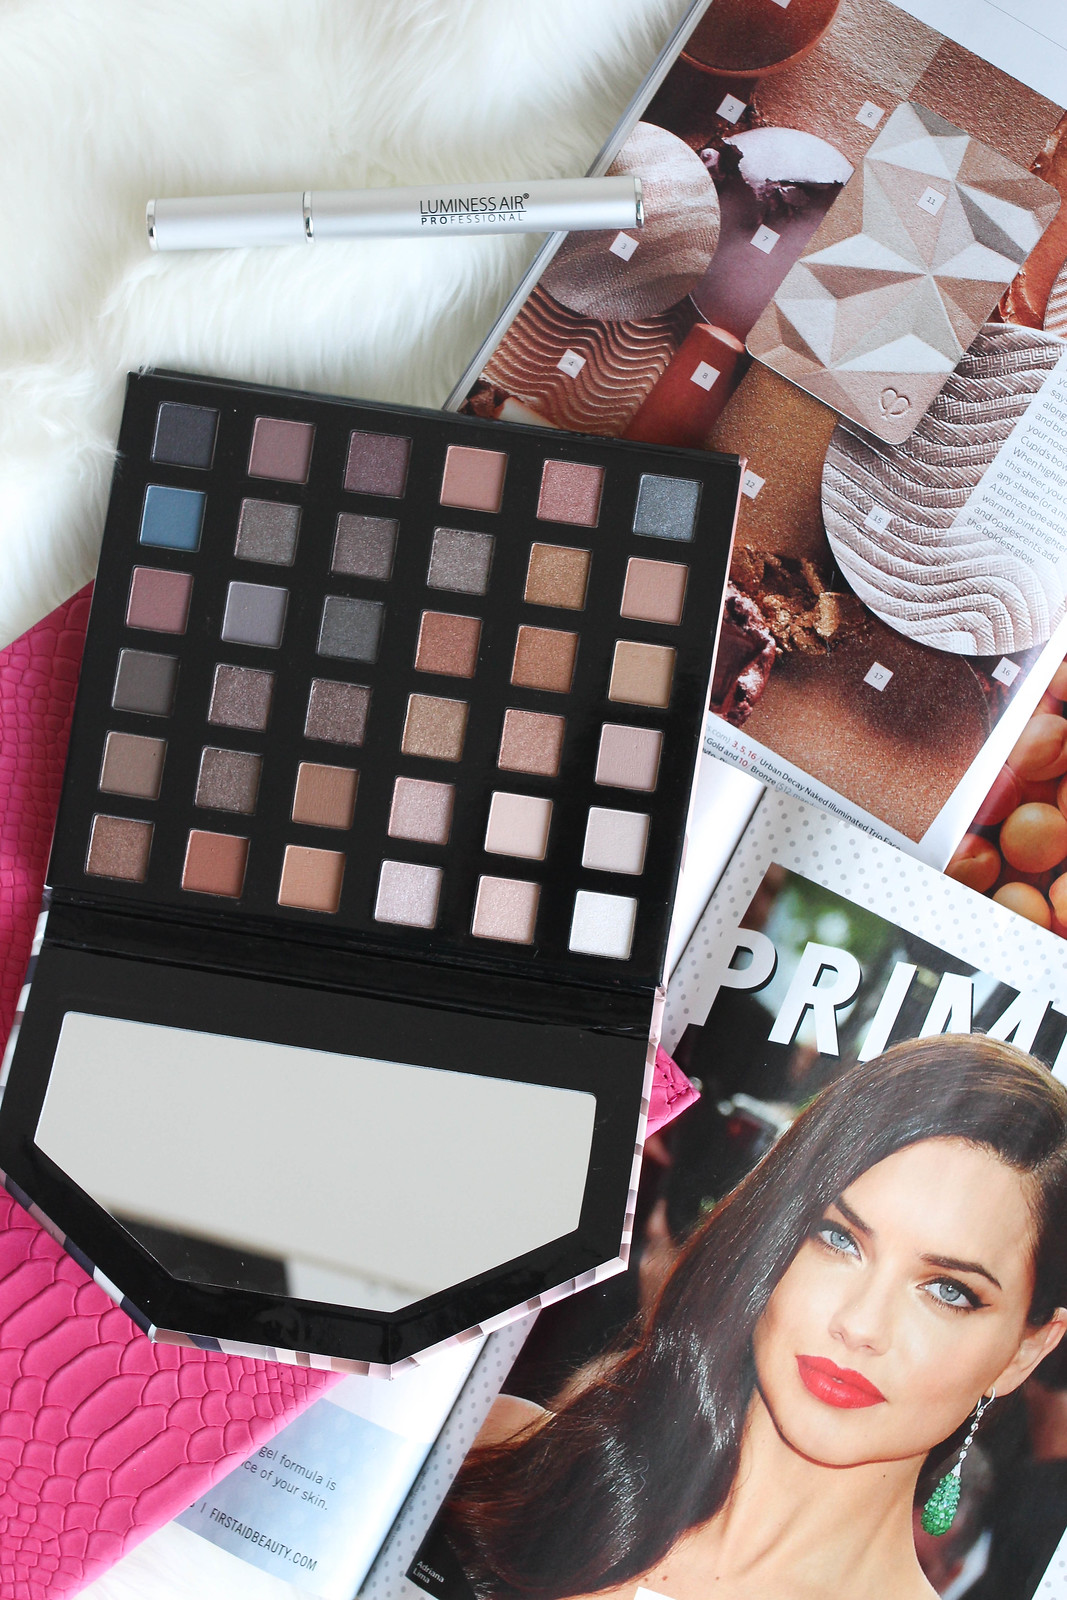 Luminess Air Nude & Naughty Eye Shadow Palette